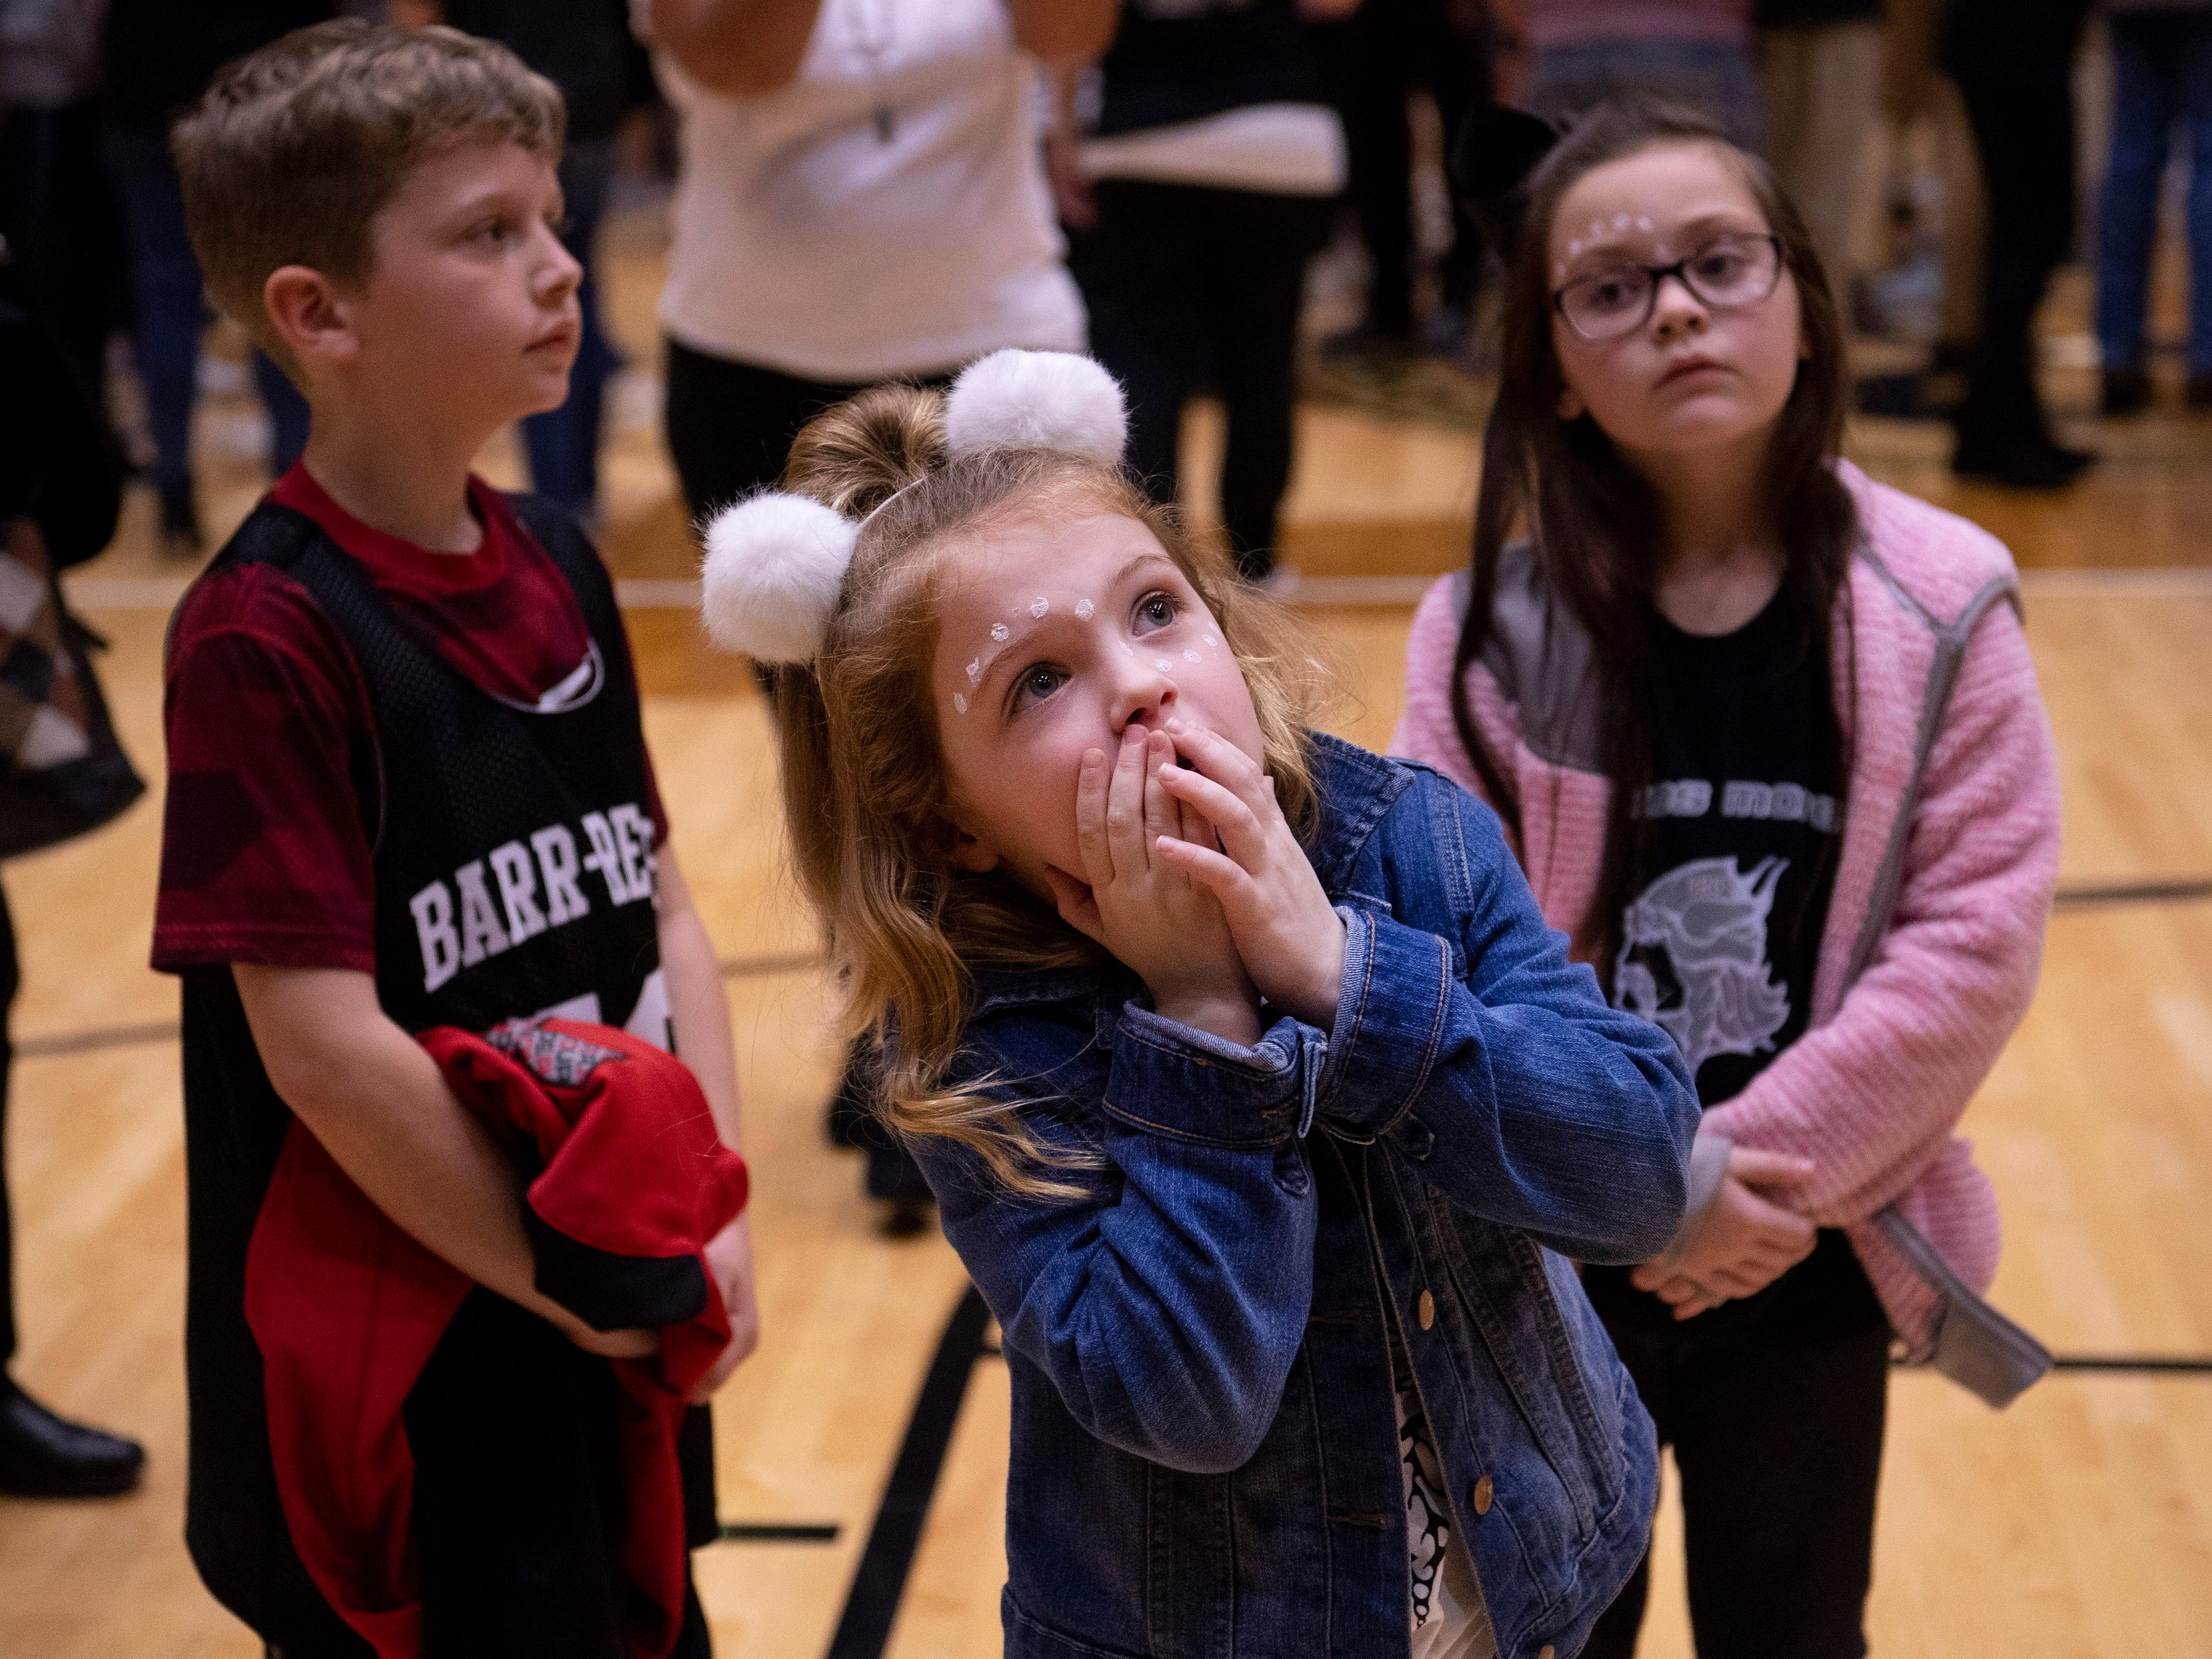 Clair Doyle, 6, watches the net being cut down after the 1A Boys Indiana Semi-State Basketball Tournament at the Hatchet House in Washington, Ind., Saturday afternoon. Barr-Reeve beat Bloomfield to advance to state next week.